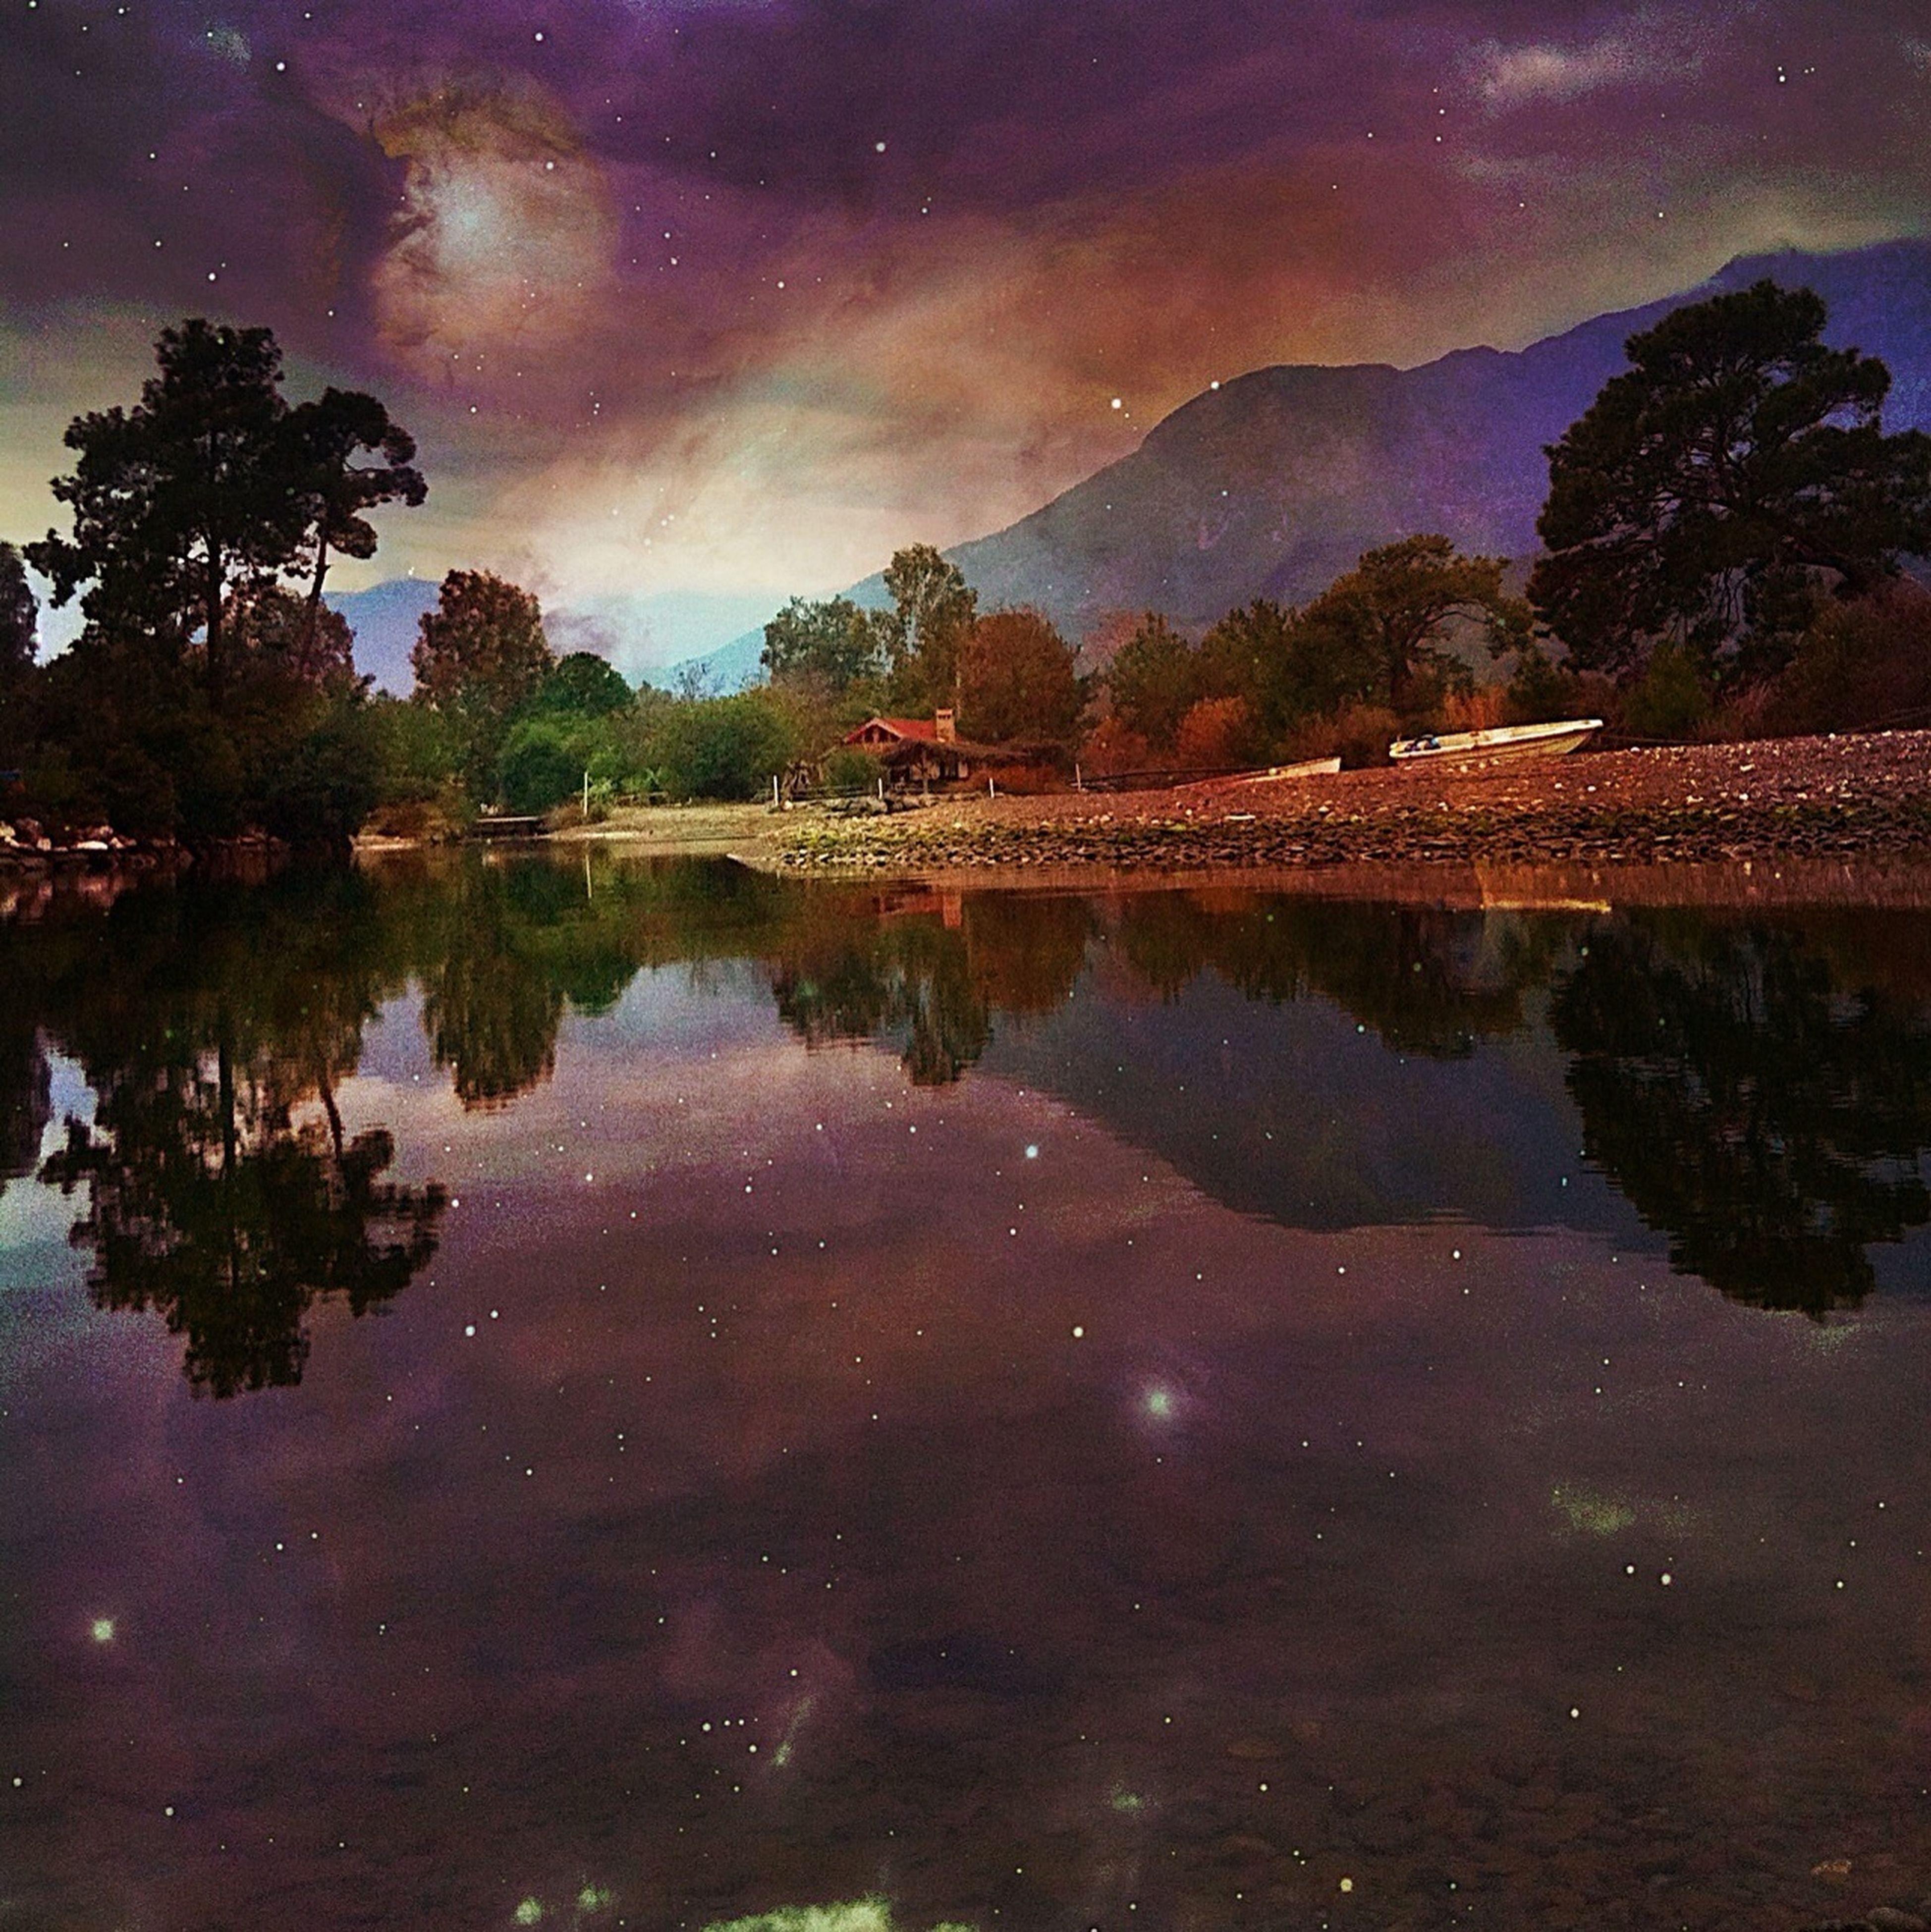 water, reflection, sky, tree, tranquility, tranquil scene, lake, scenics, beauty in nature, cloud - sky, nature, dusk, standing water, idyllic, waterfront, night, illuminated, cloud, river, outdoors